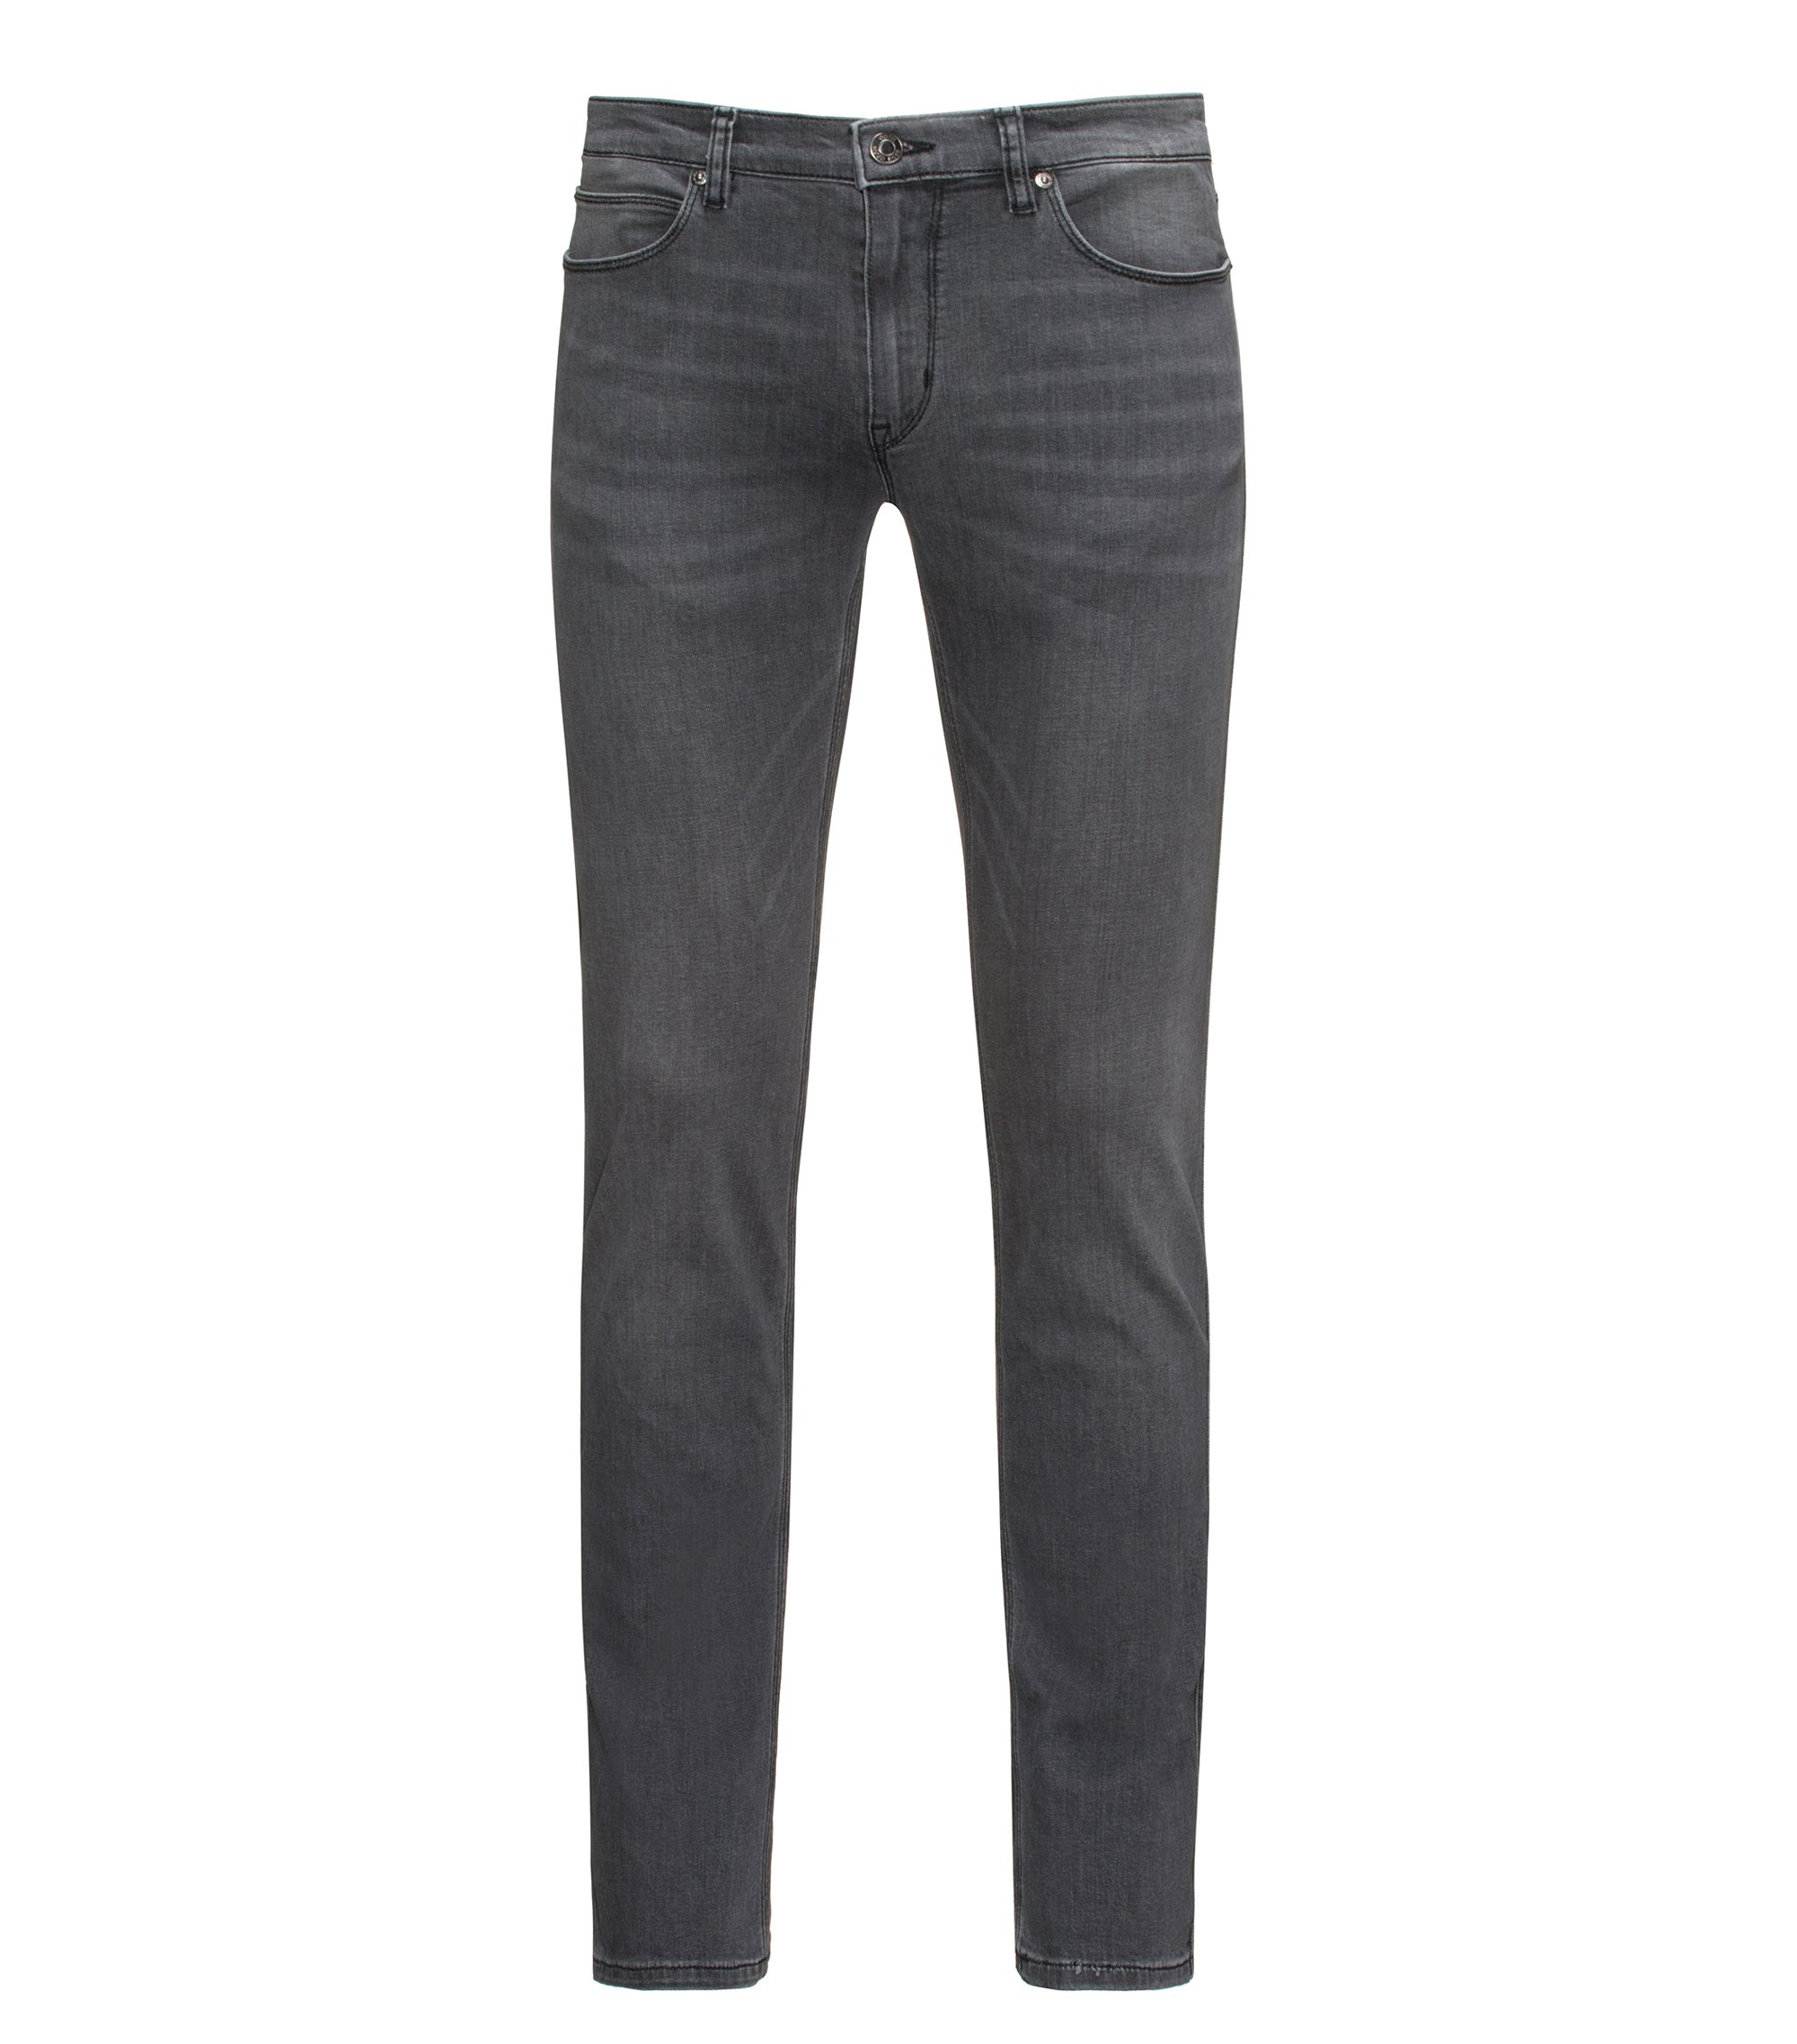 Jeans Slim Fit en denim stretch confortable gris stone-washed, Gris sombre